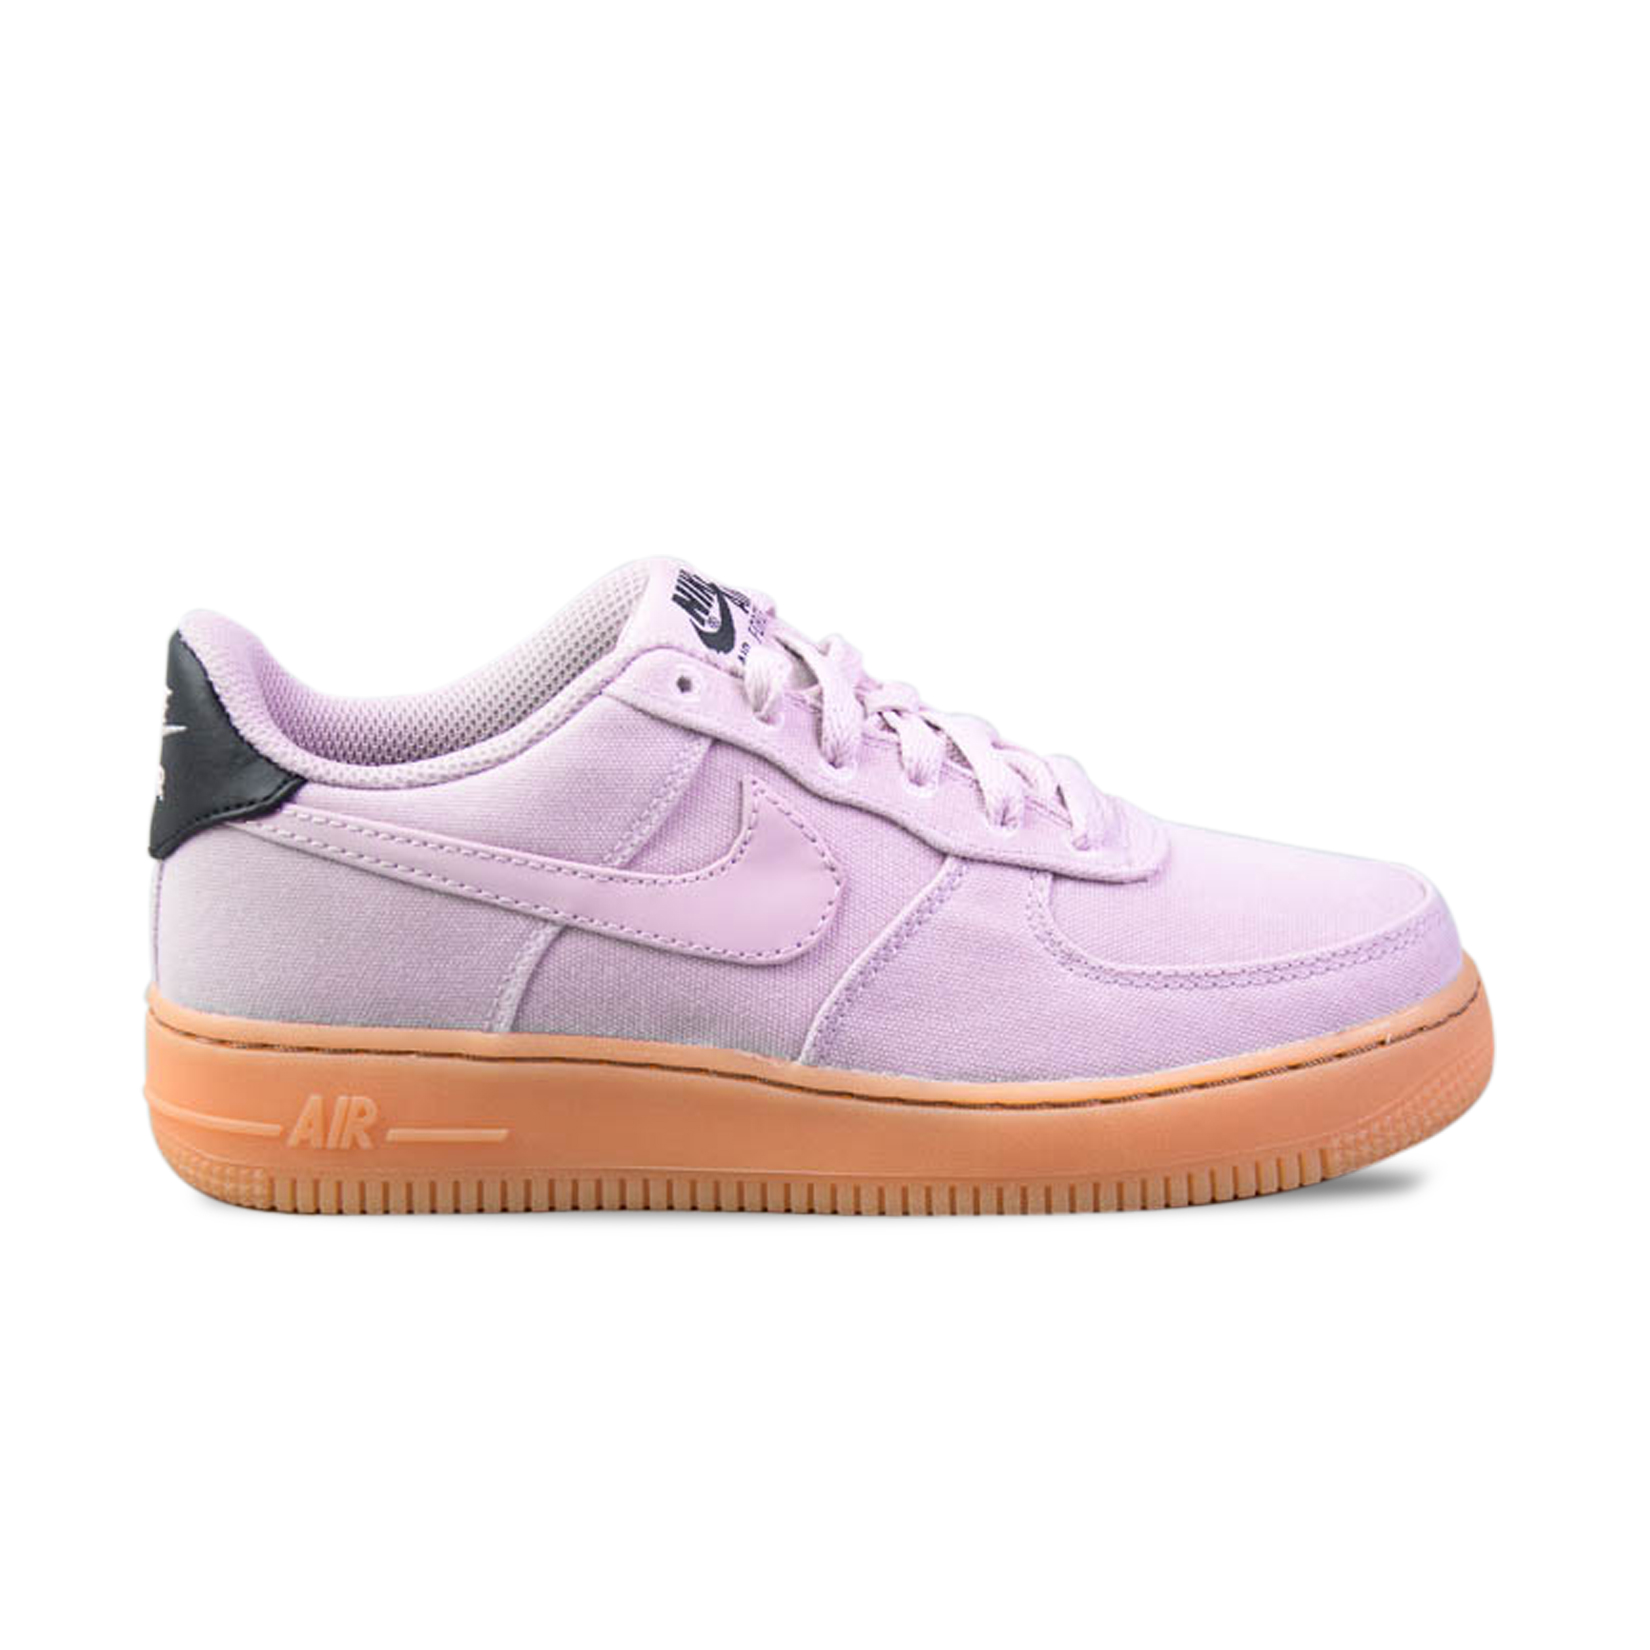 Nike Air Force 1 07 LV8 Pink - Gum